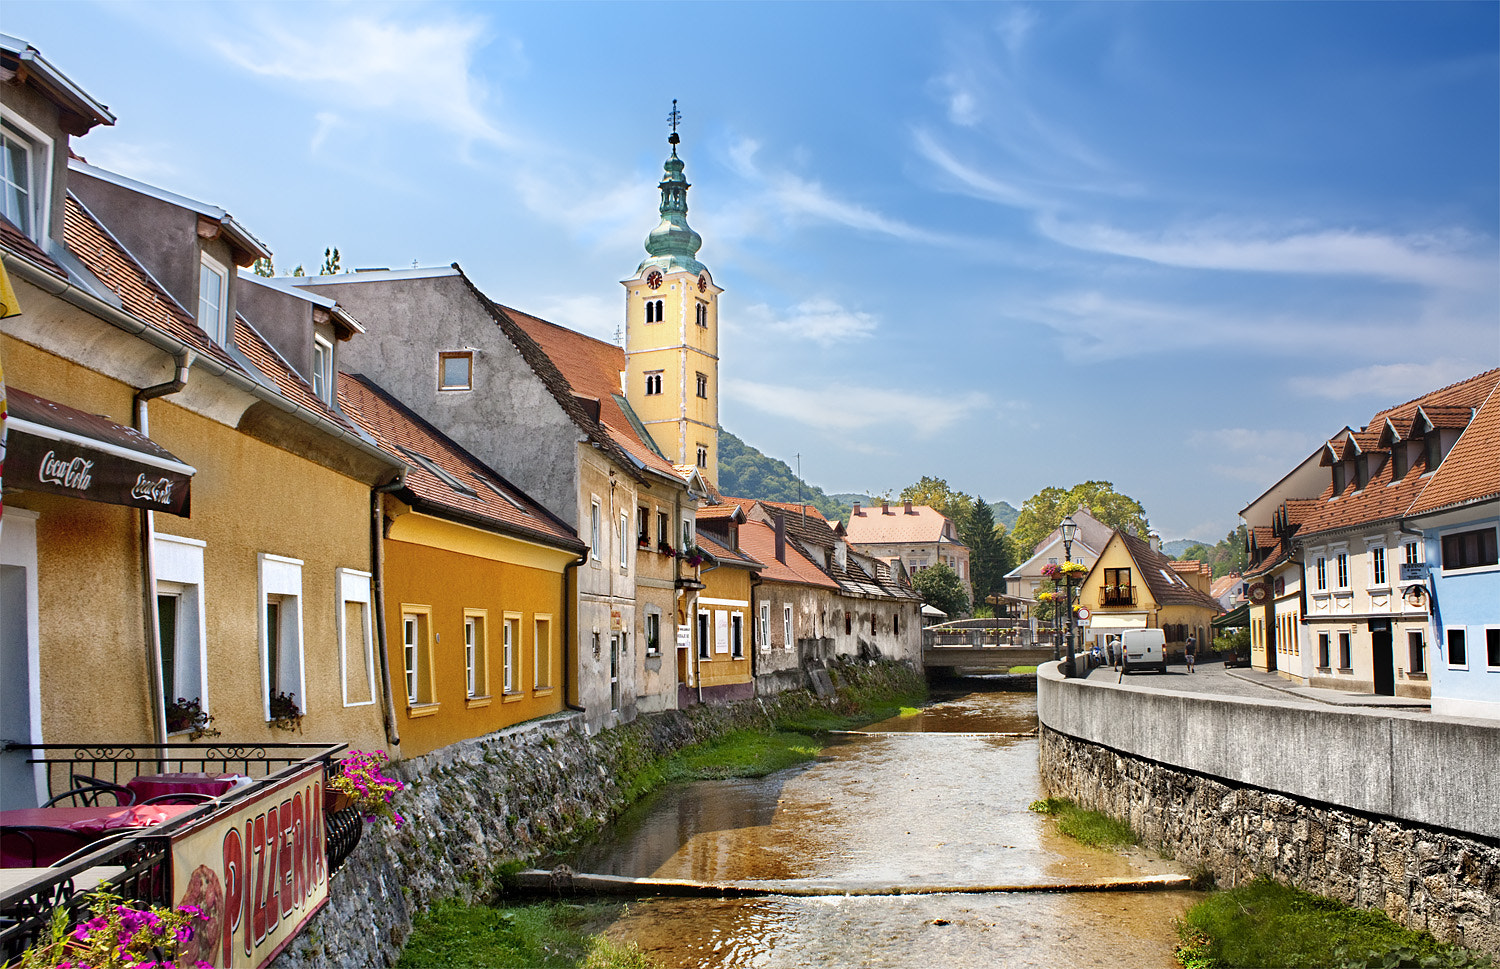 Photograph Samobor (Croacia) by Jesús Sánchez Ibáñez on 500px